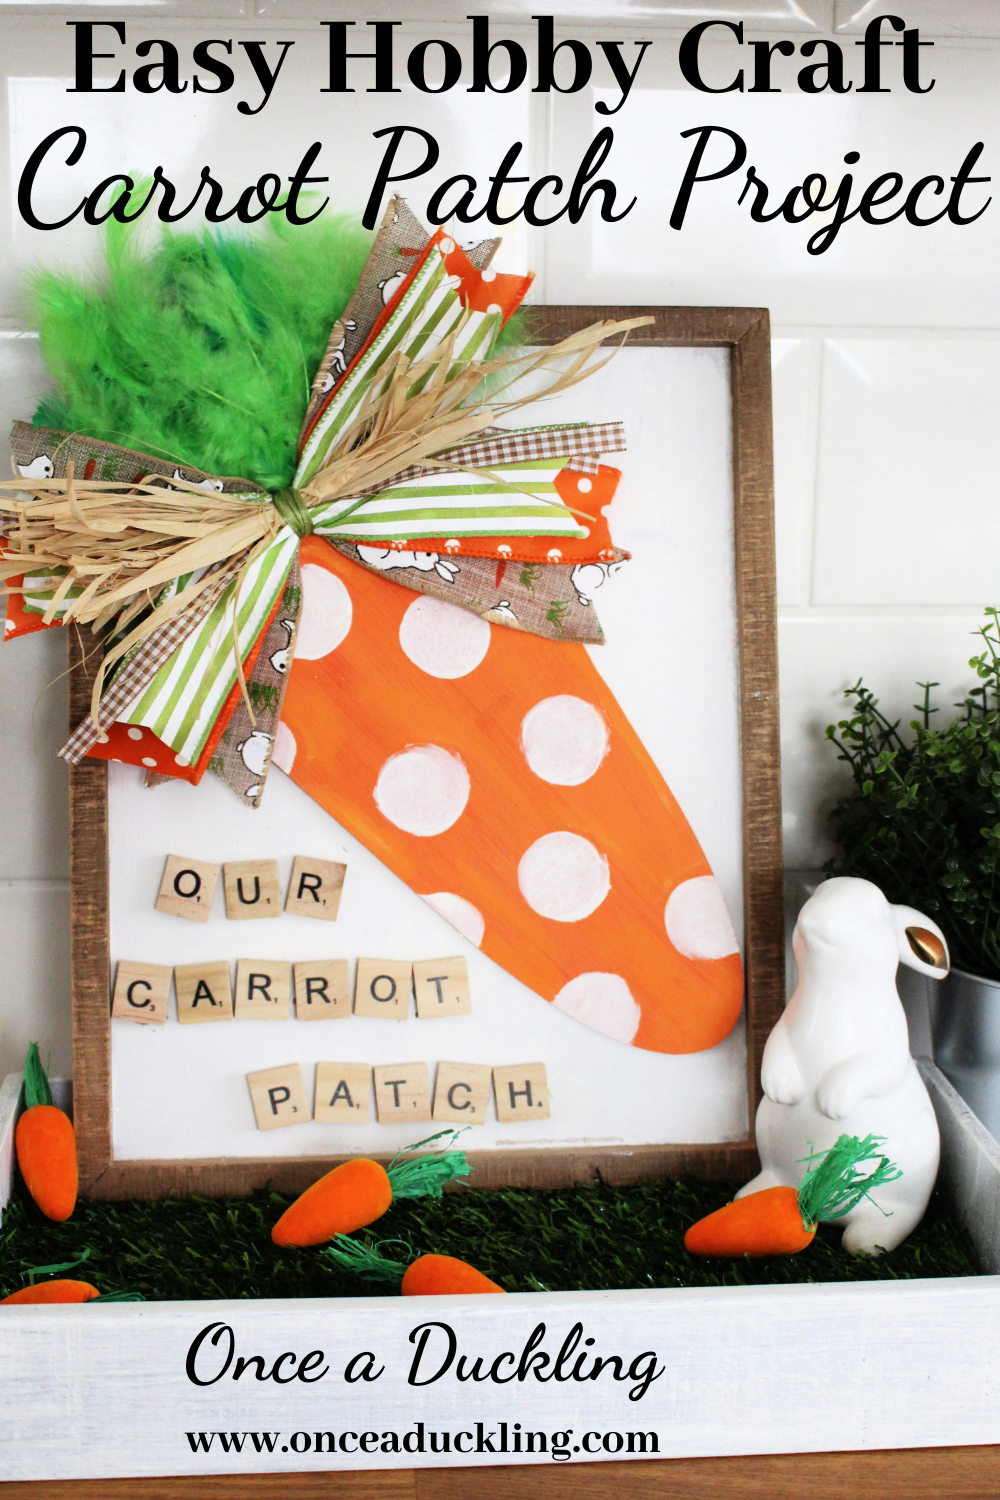 Hobby Craft Carrot Patch Project